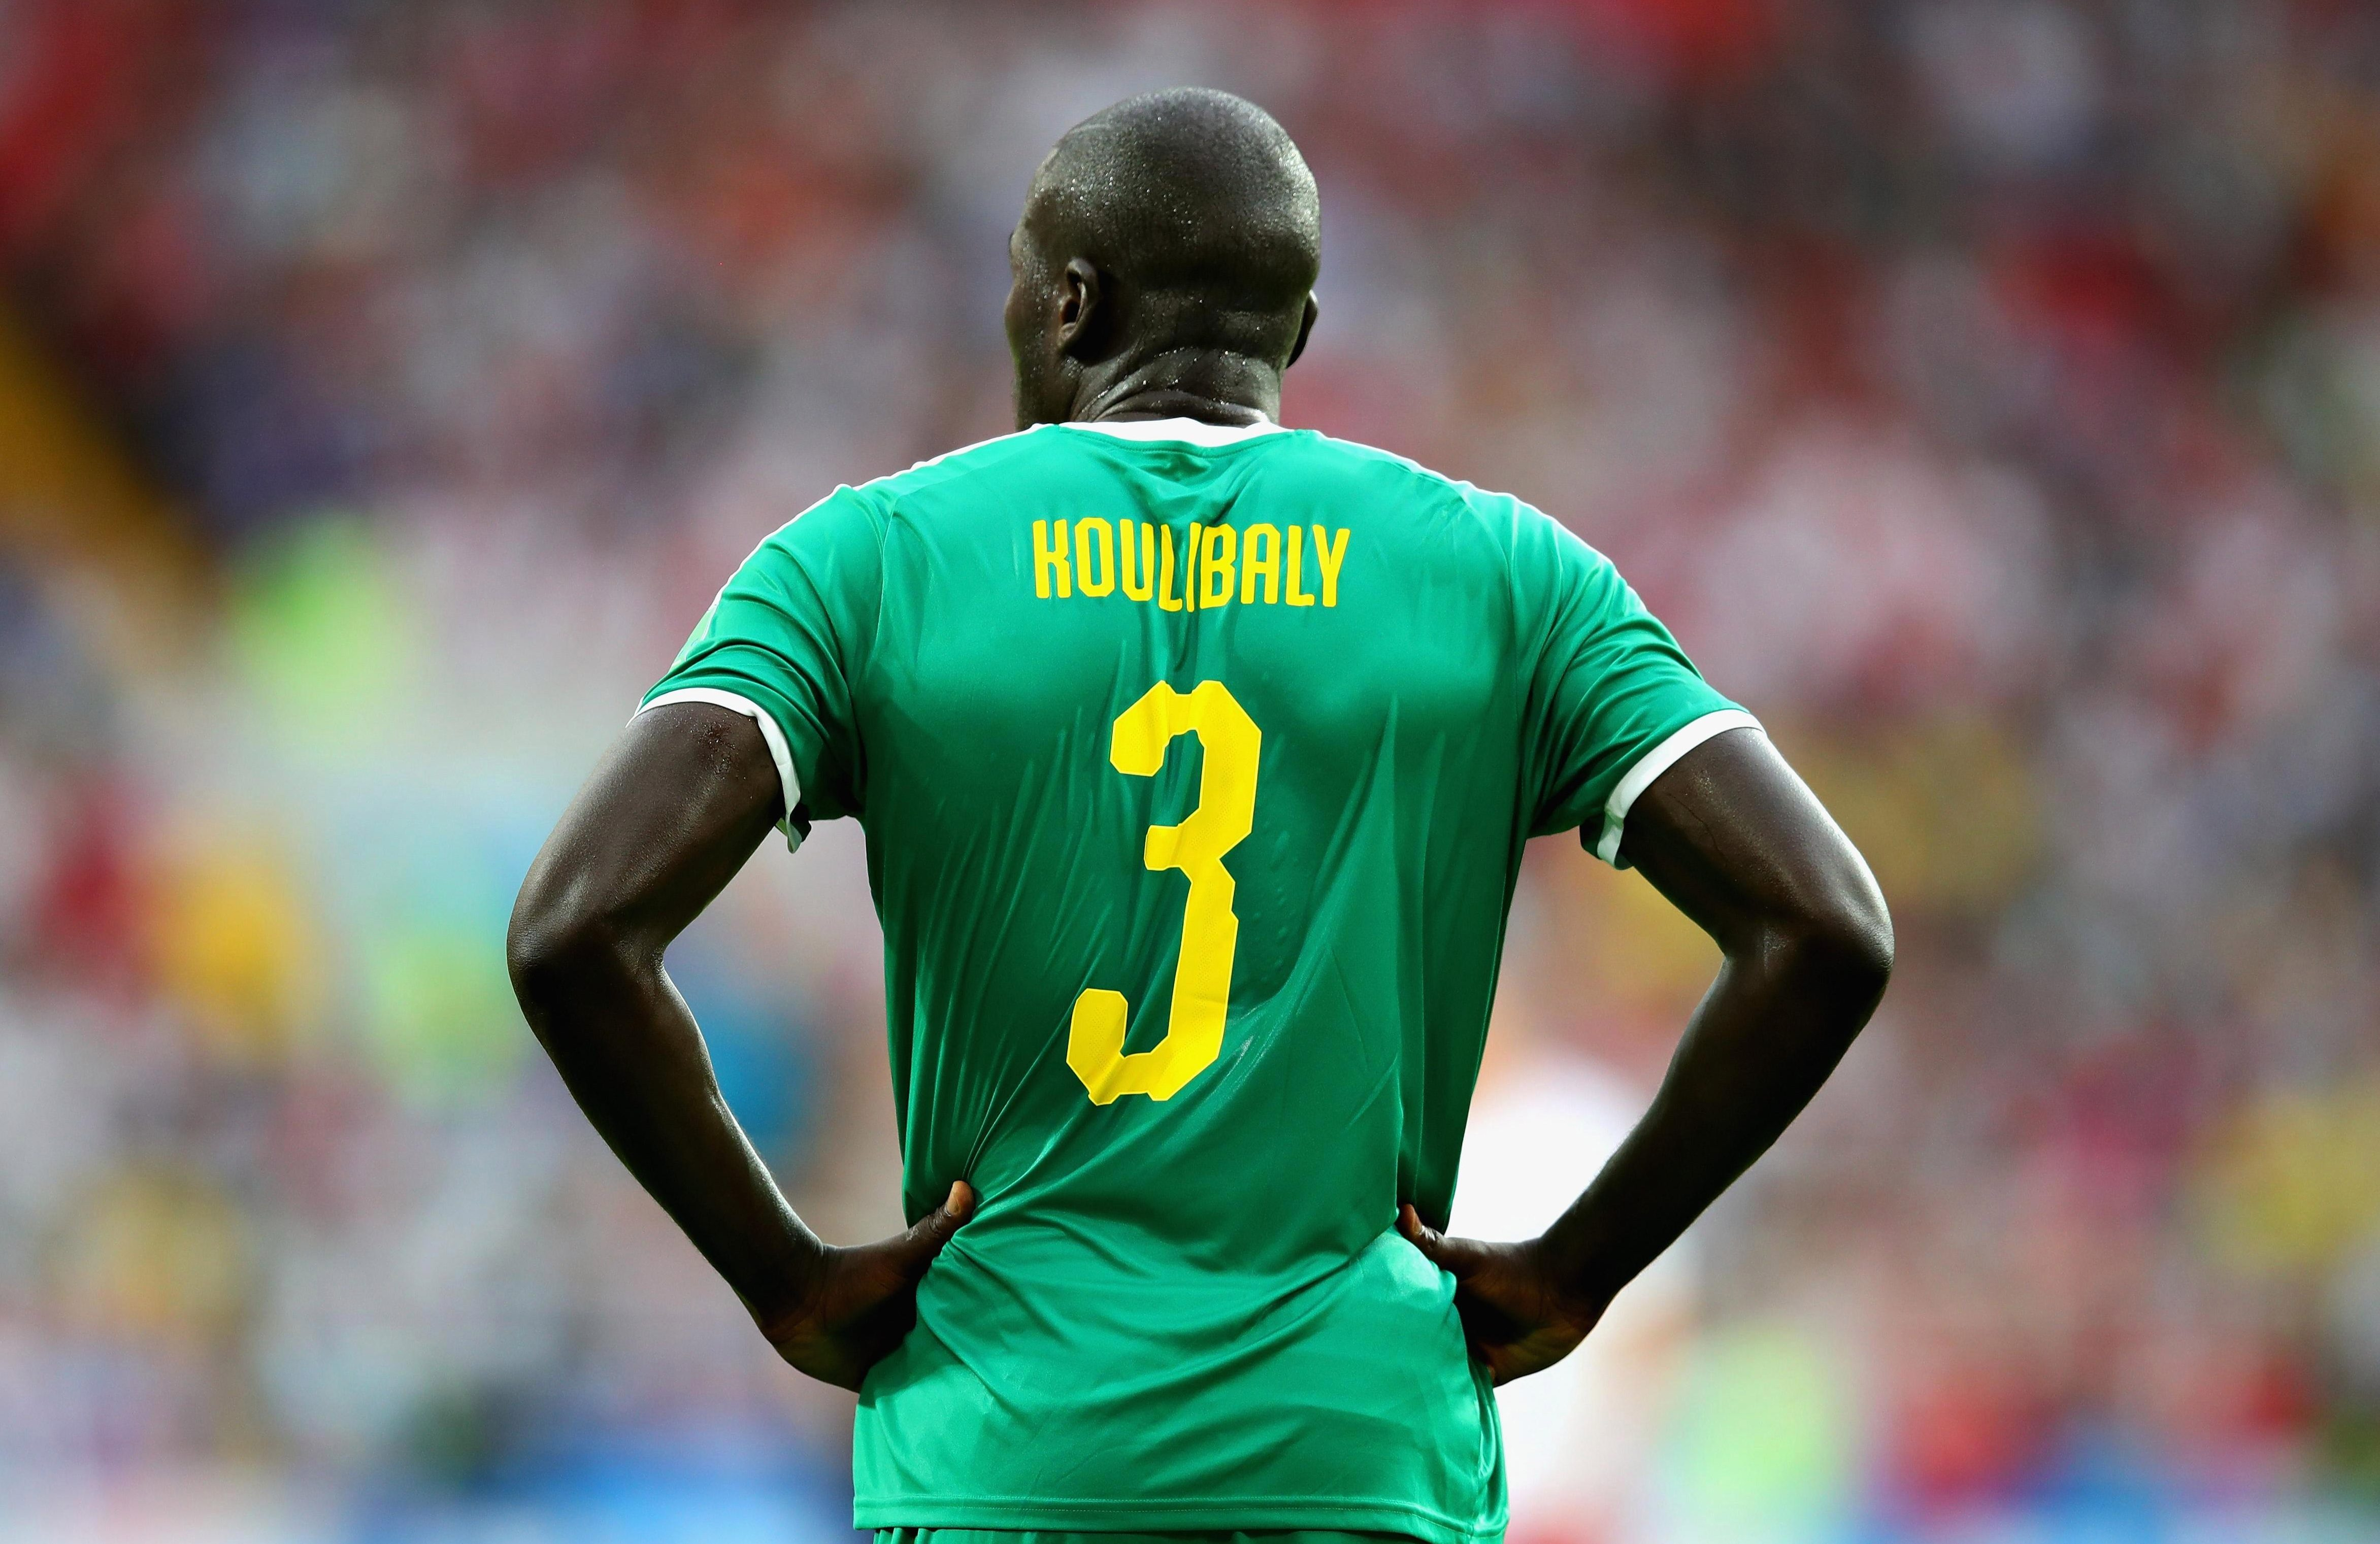 Representing Senegal at the World Cup